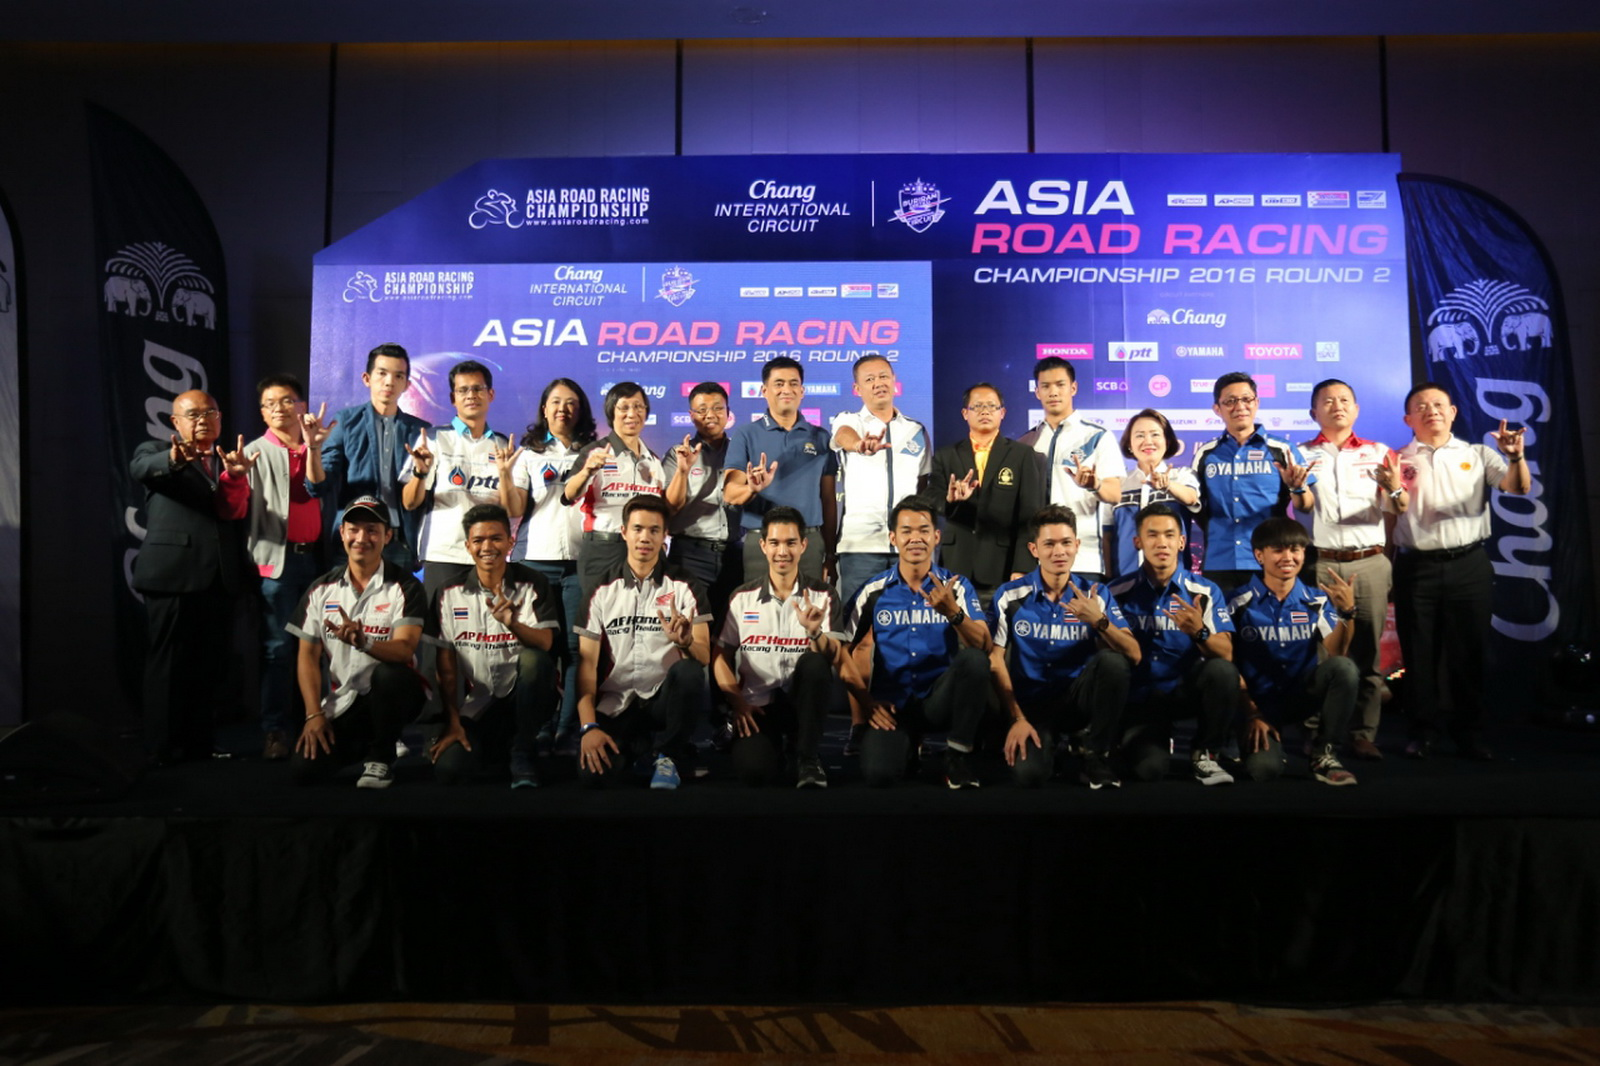 asia_road_race_press_14